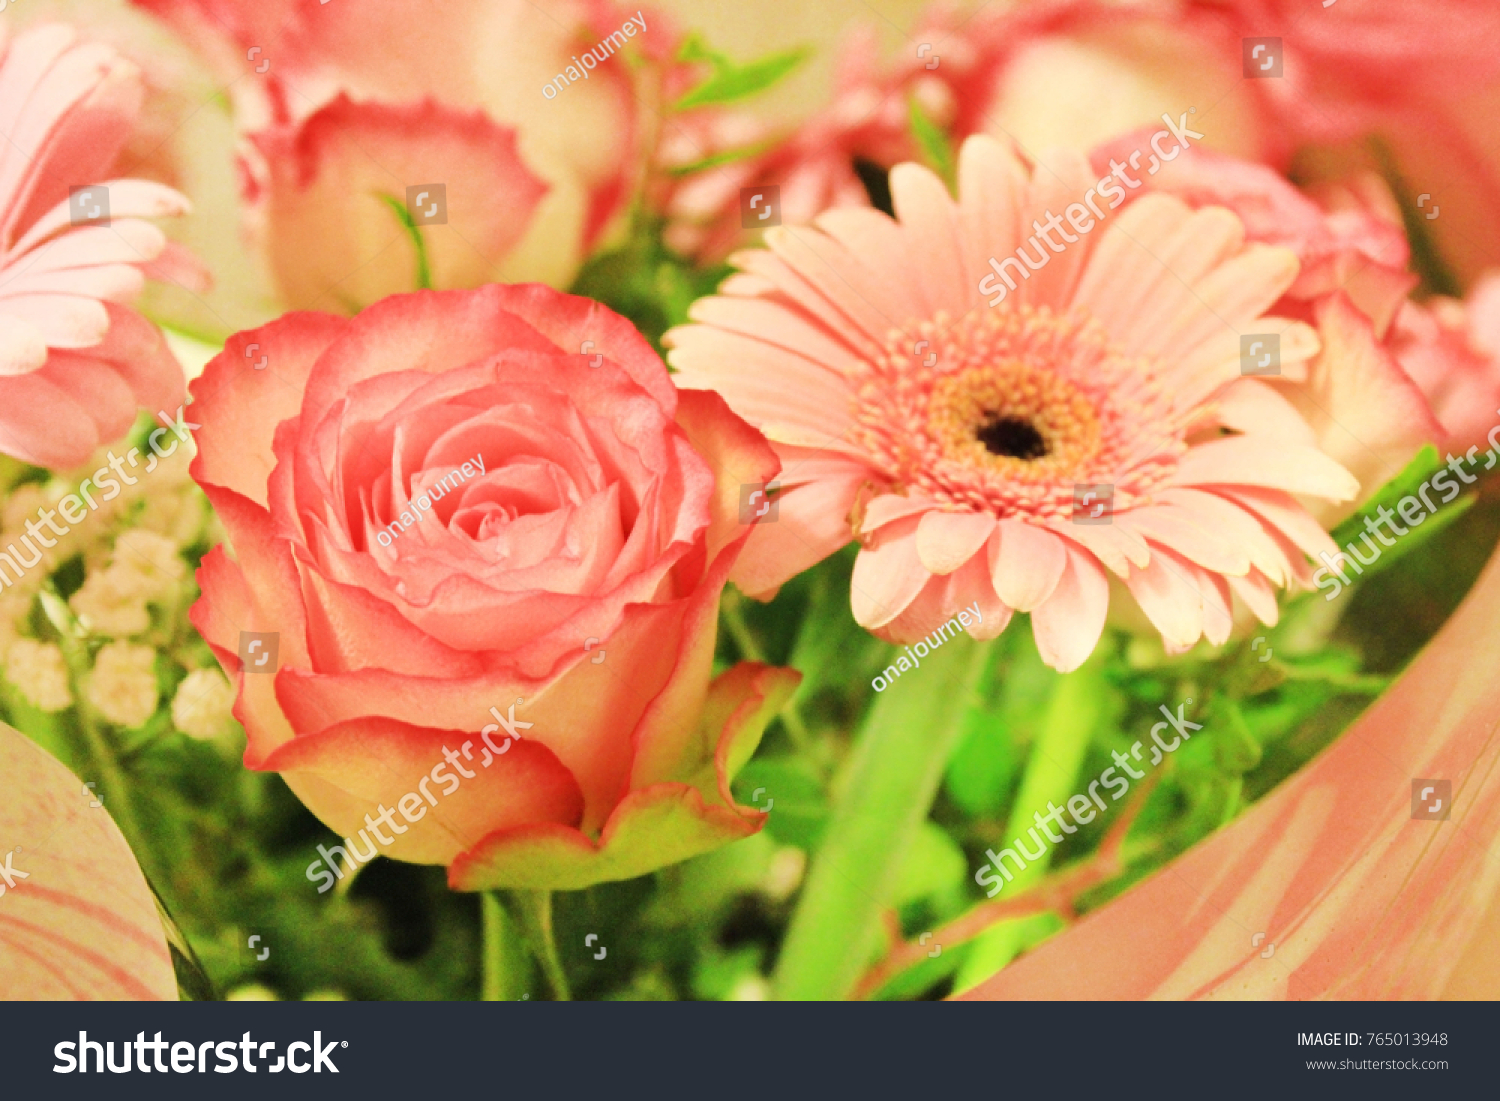 Pink Rose Gerbera Daisy Flower Bouquet Stock Photo (Royalty Free ...